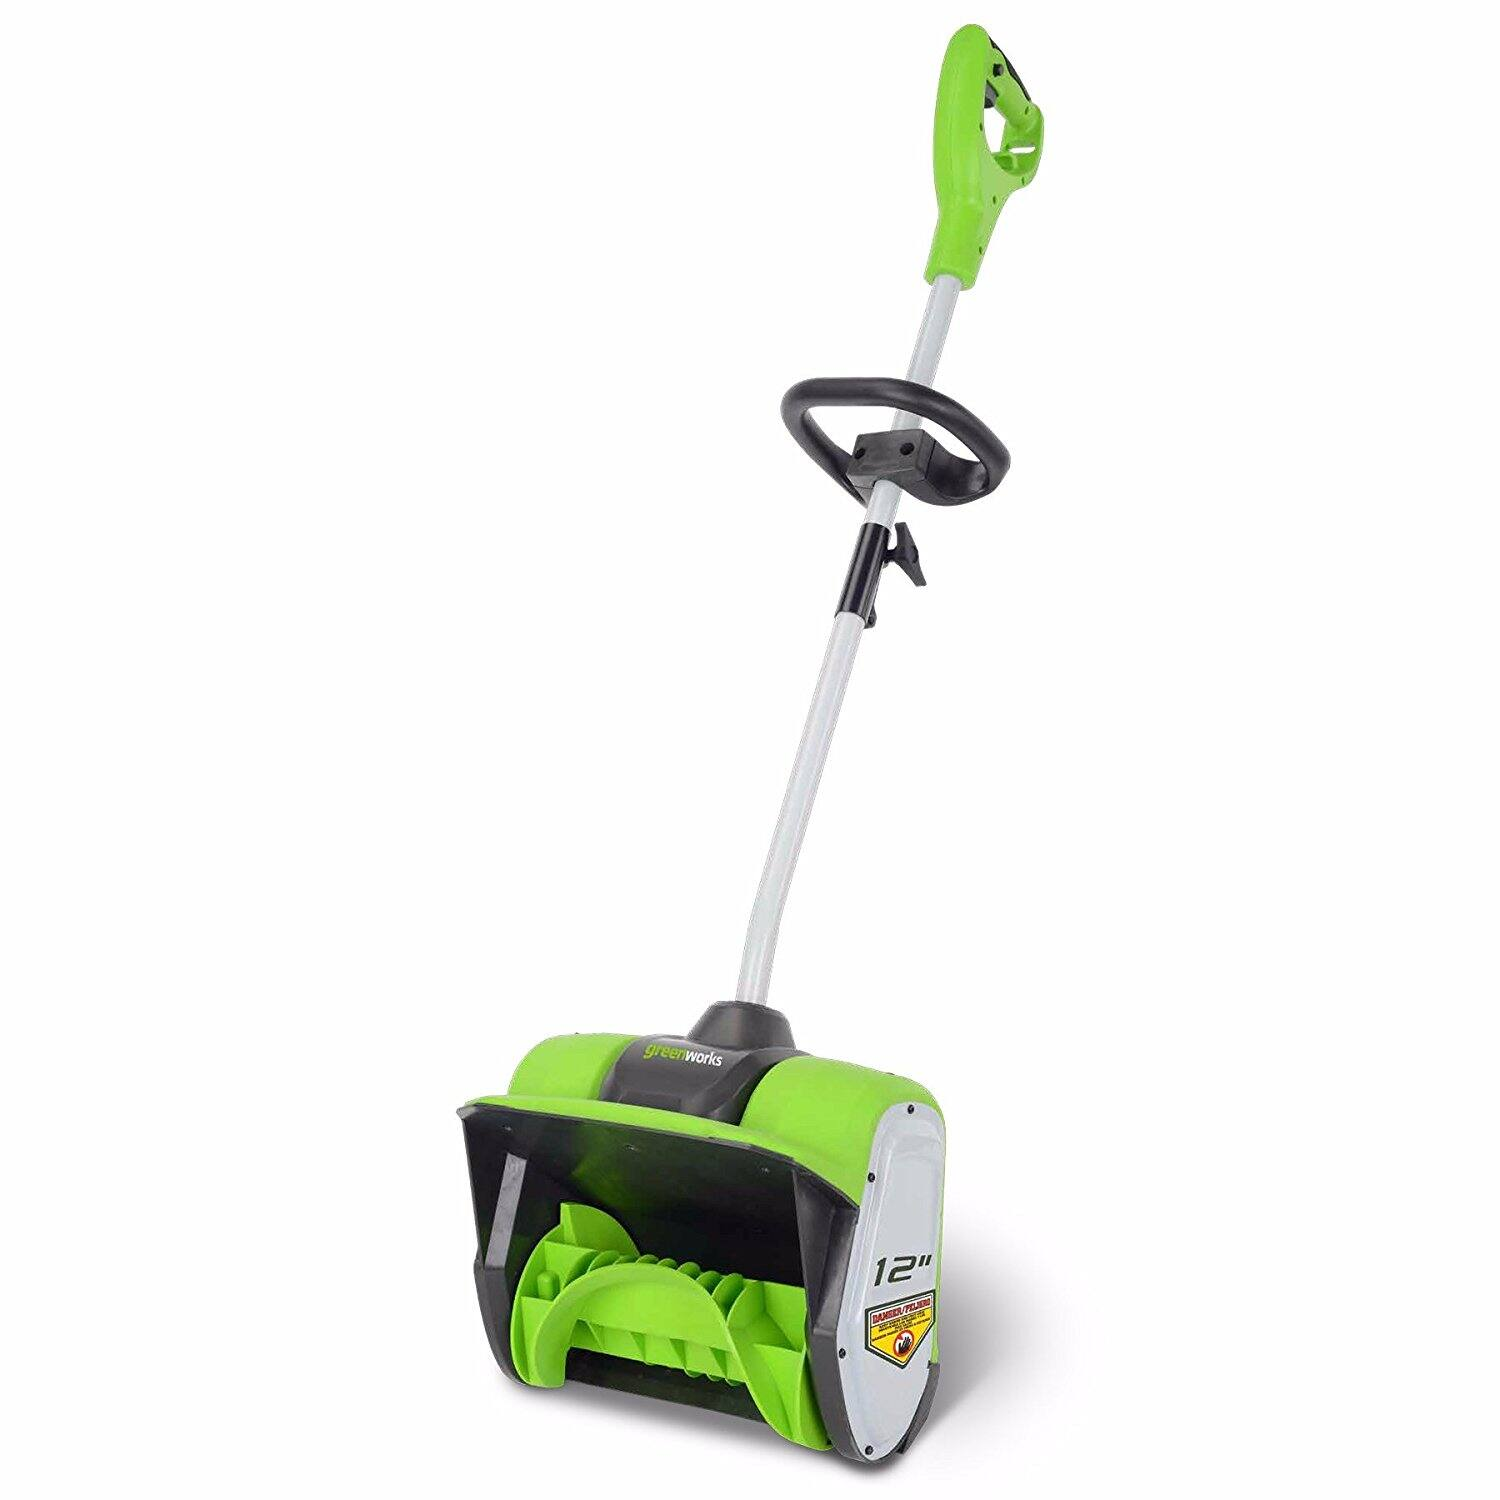 $48 Corded Snow Shovel thrower $48 GreenWorks 2600802 8 Amp 12-Inch Corded Snow Shovel thrower on Amazon $48.63